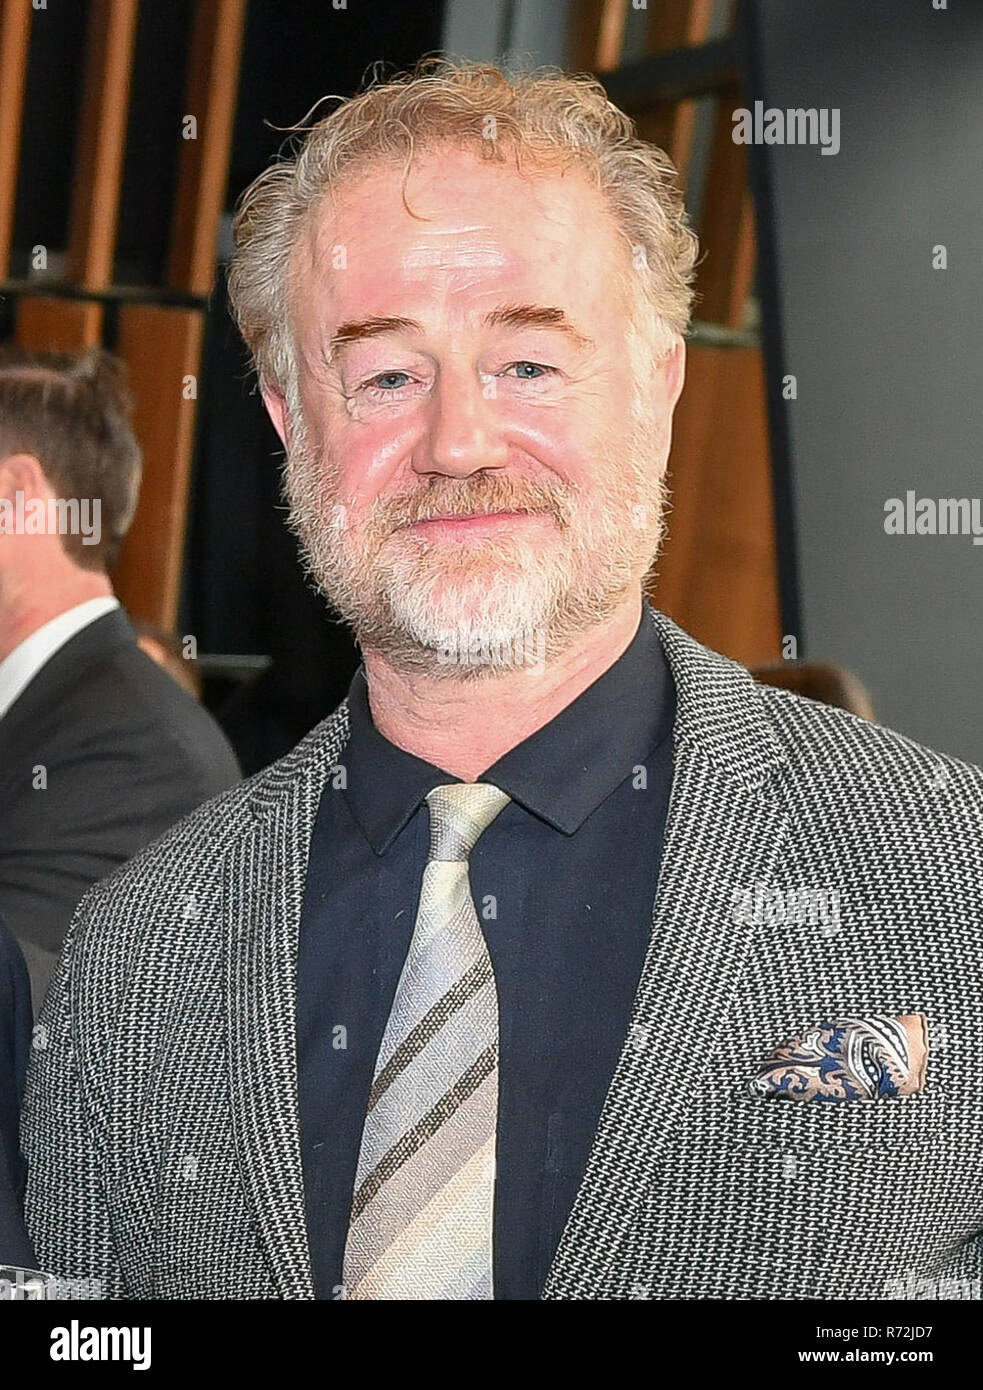 Actor Owen Teale attends a reception at The Royal Welsh College of Music & Drama in Cardiff. - Stock Image